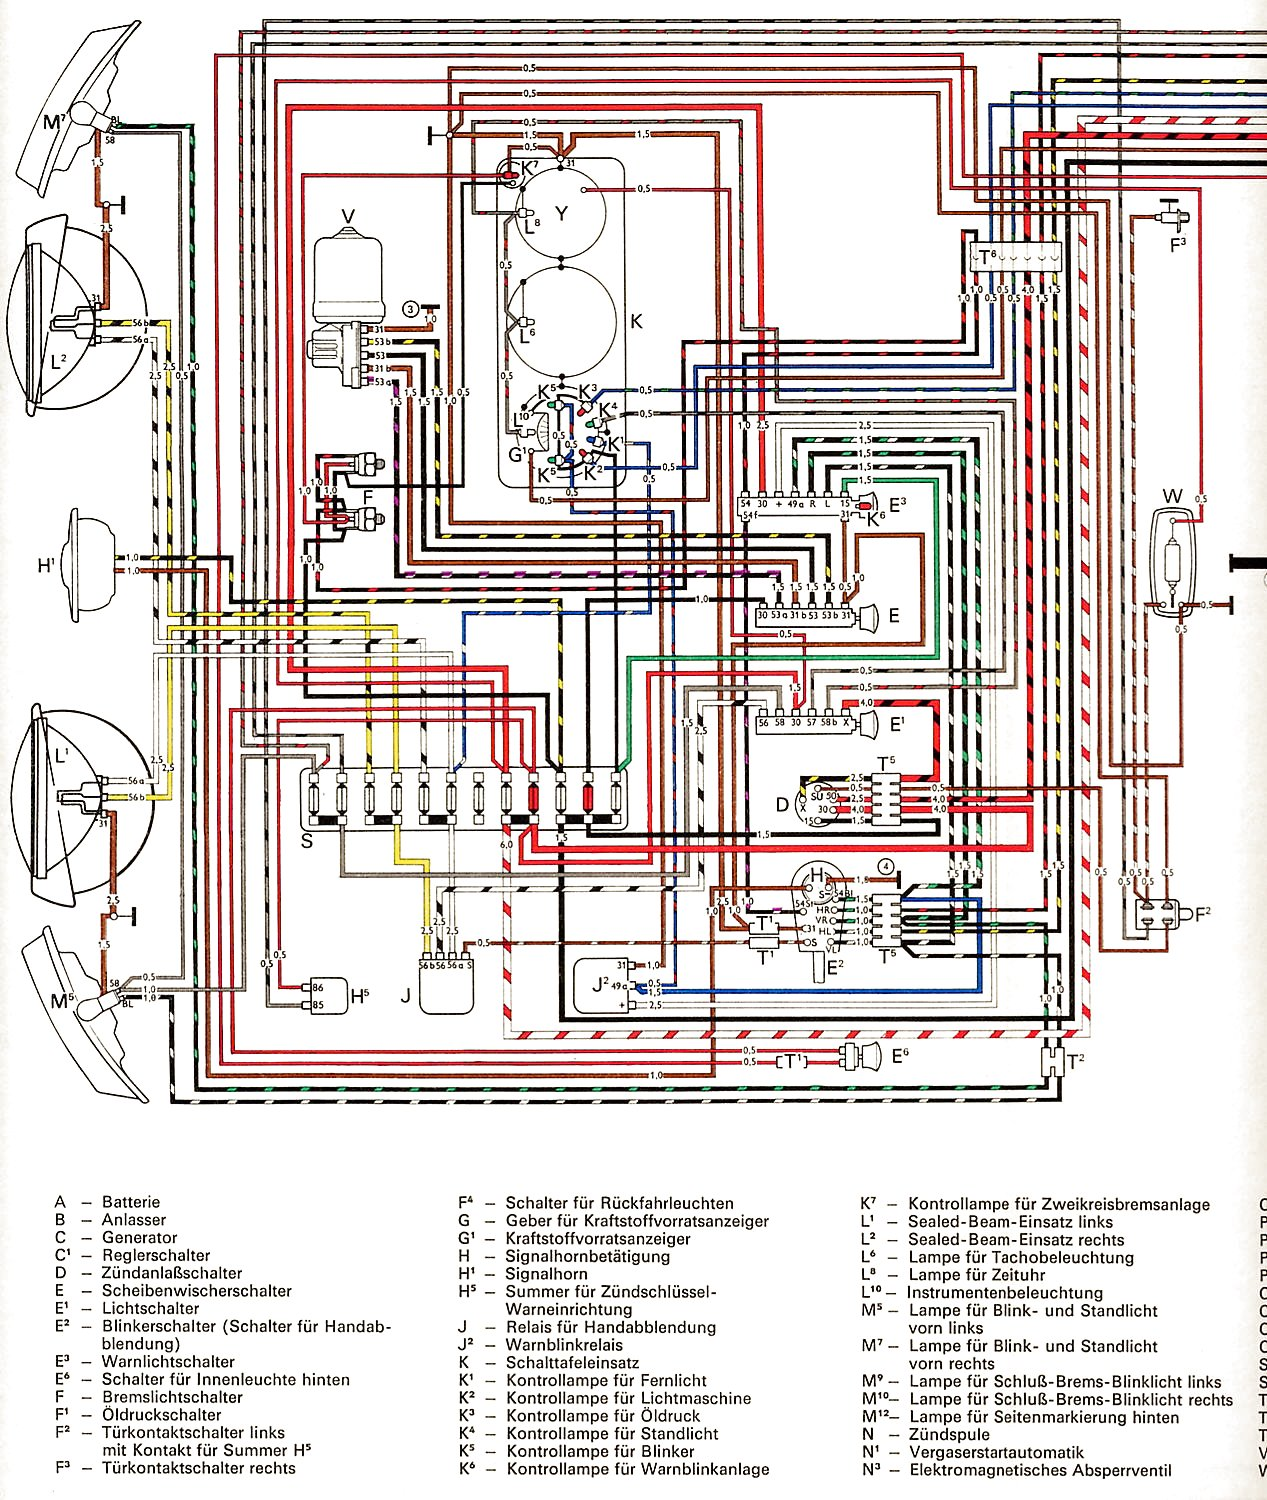 Vw wiring diagram wiring diagrams schematics vintagebus com vw bus and other wiring diagrams vw wiring diagram 6 vw wiring diagram swarovskicordoba